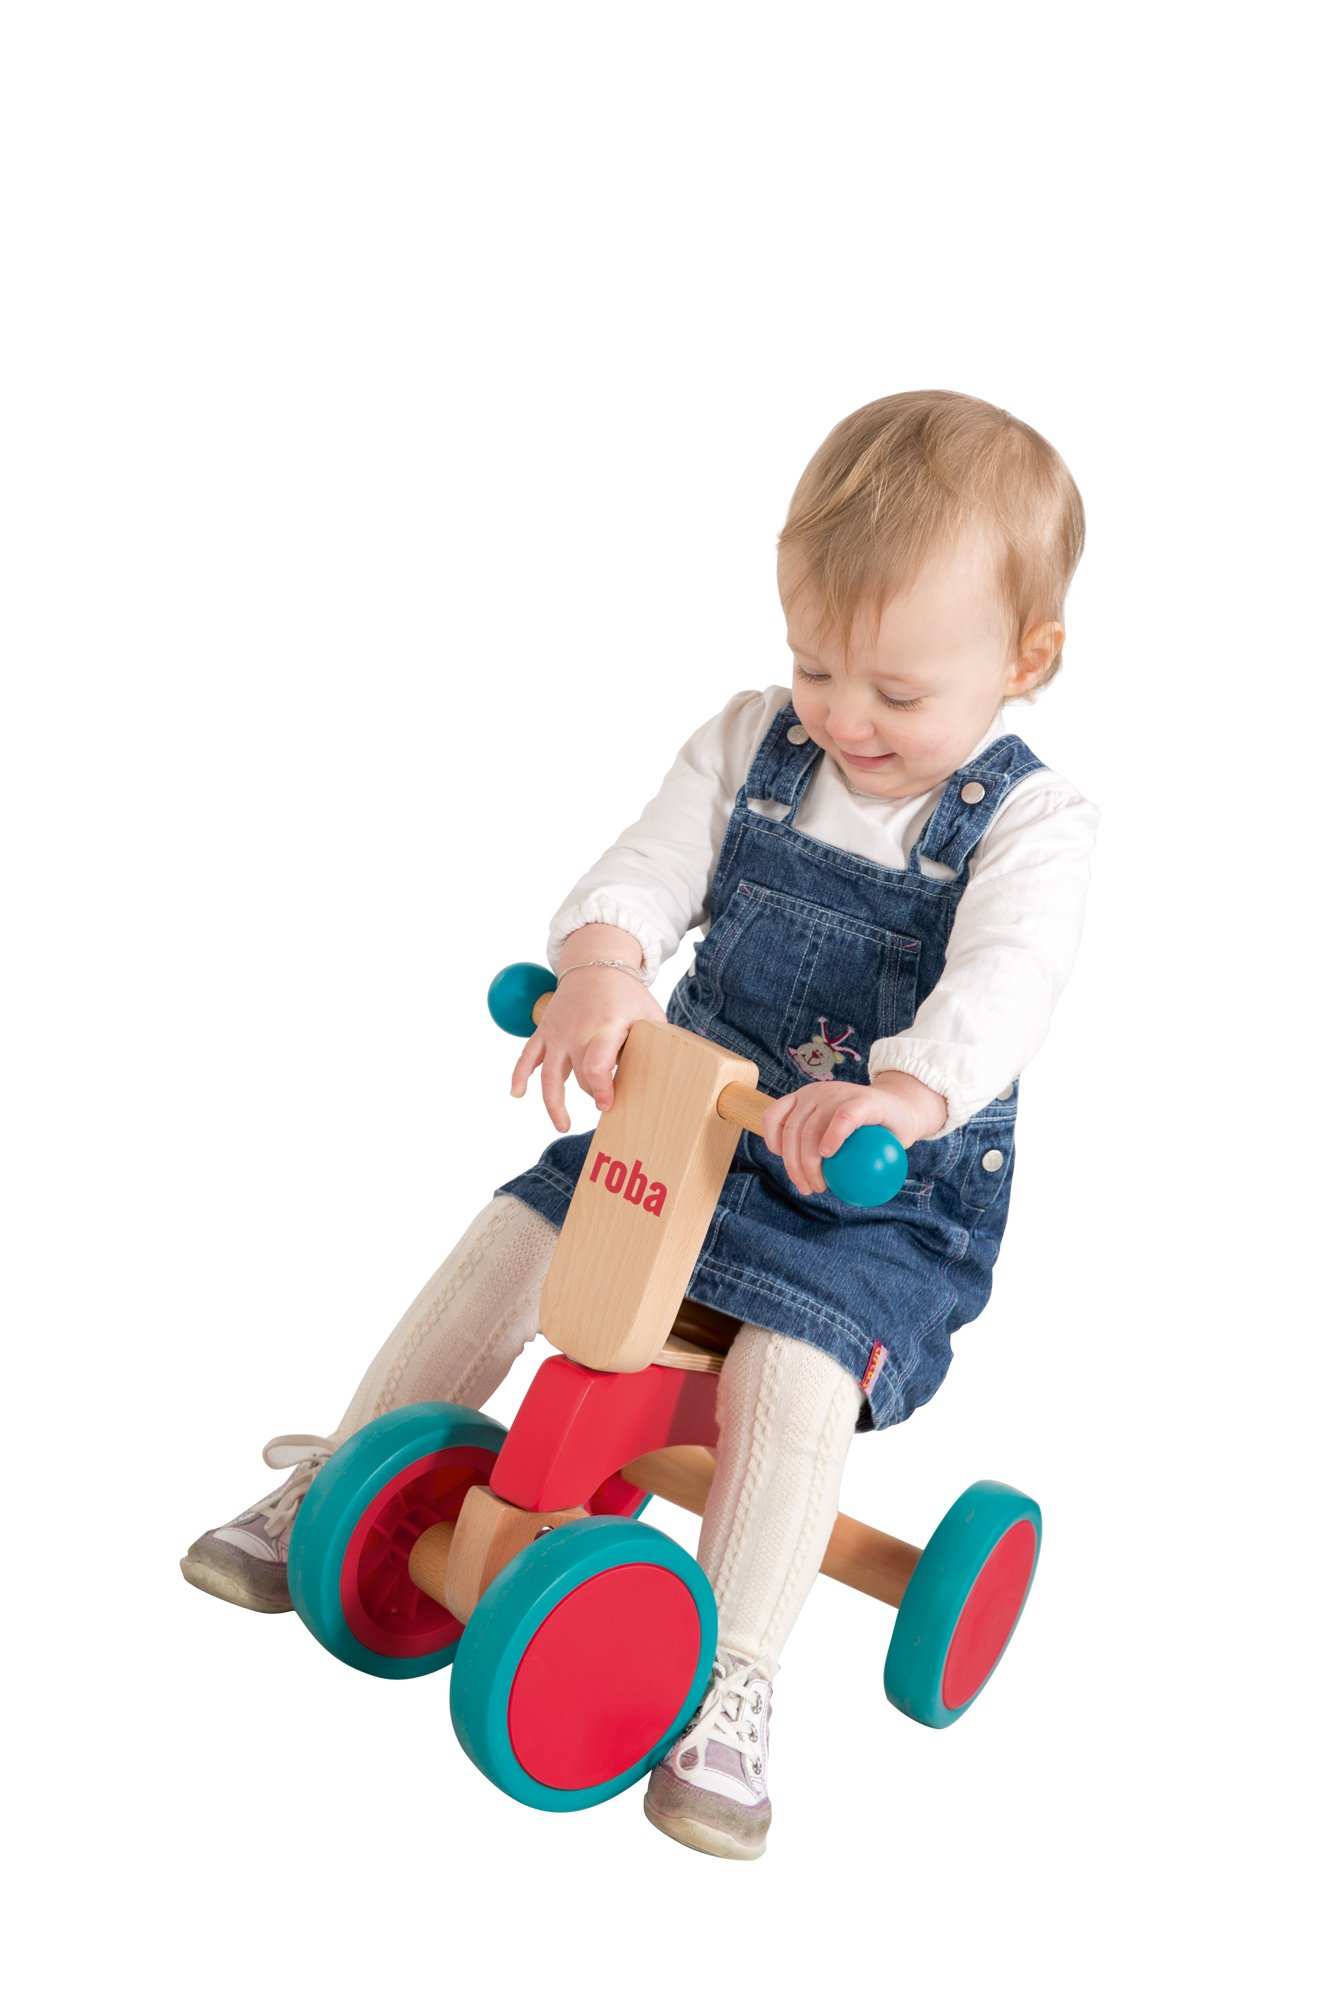 roba Wooden Vehicle for Toddlers from 1Year Old  This Roba wooden vehicle is the ideal learner's bicycle from toddlers of 12months and over to learn about balance and body coordination while having fun. The vehicle has a soft padded seat that is 22cm in height, and is suitable for children who are 80cm tall and over. The large coloured rubber tyres made from soft material (won't harm the floor) ensures a secure grip and is easy to move forward – for indoor and outdoor use. 6